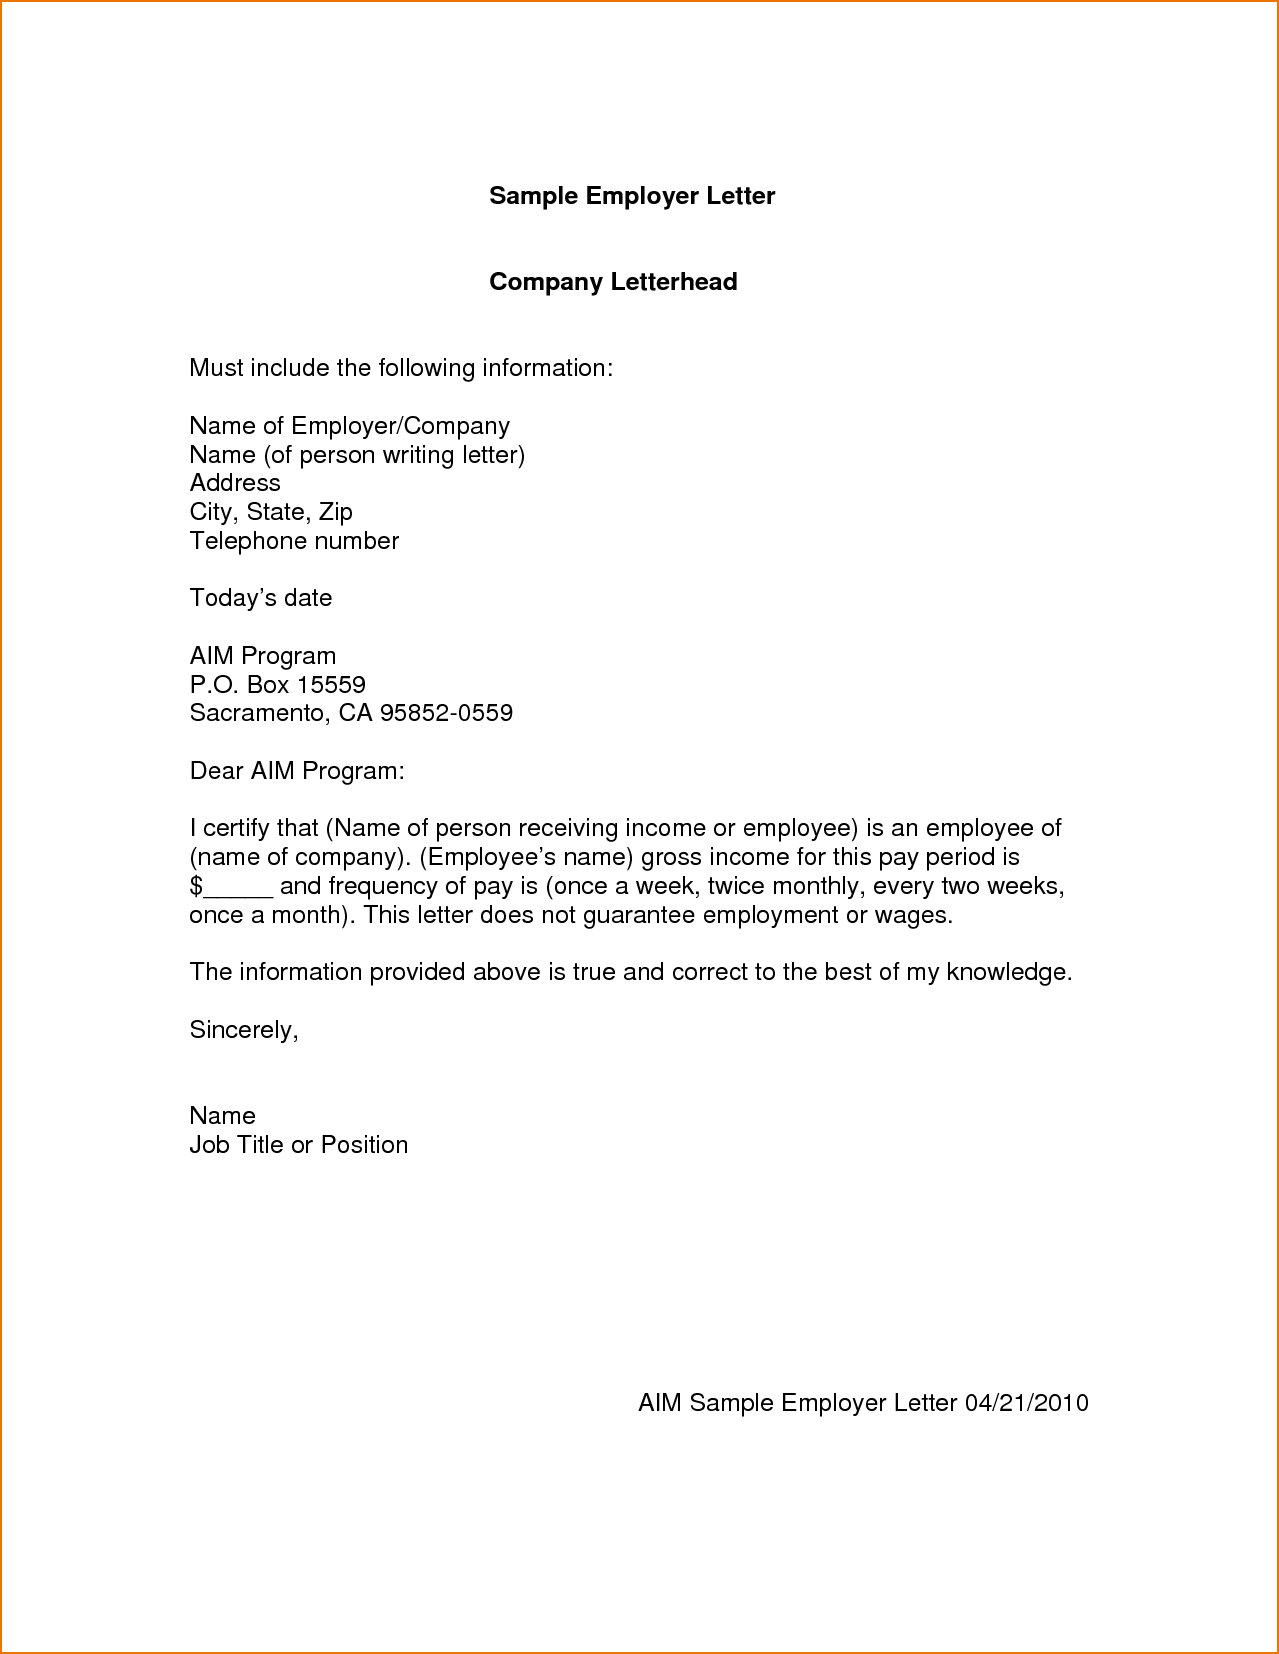 Letter Of Employment Sample Writing A Good Application Letter Example Job  Letter Sample Picture Sample Application Letter For Employment Letter Of ...  A Good Cover Letter